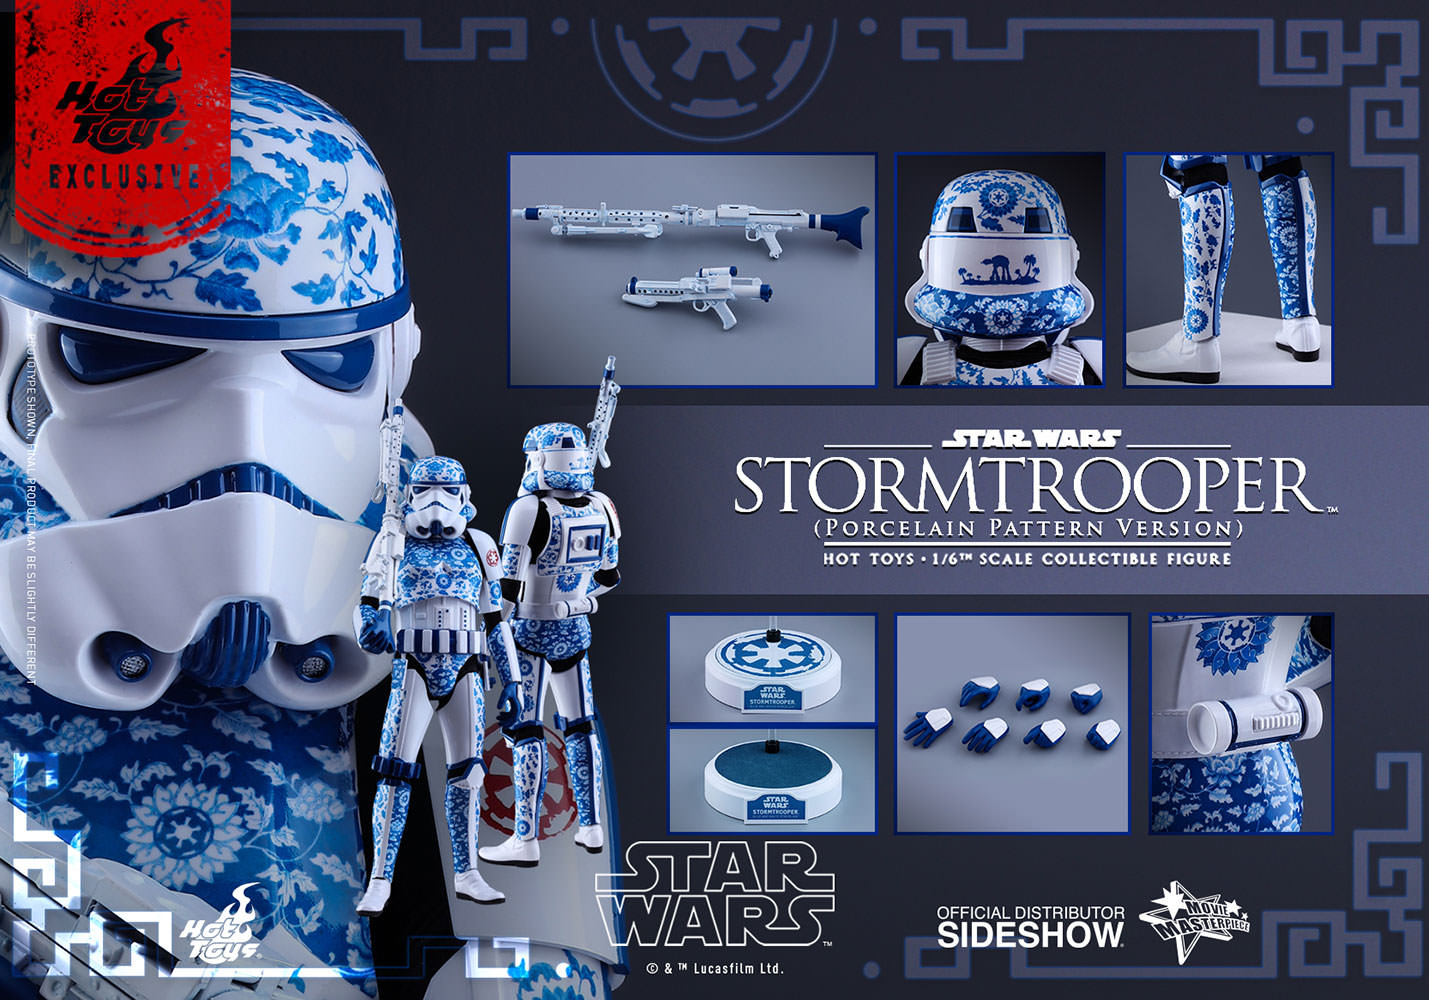 Stormtrooper Porcelain Pattern Version by Sideshow